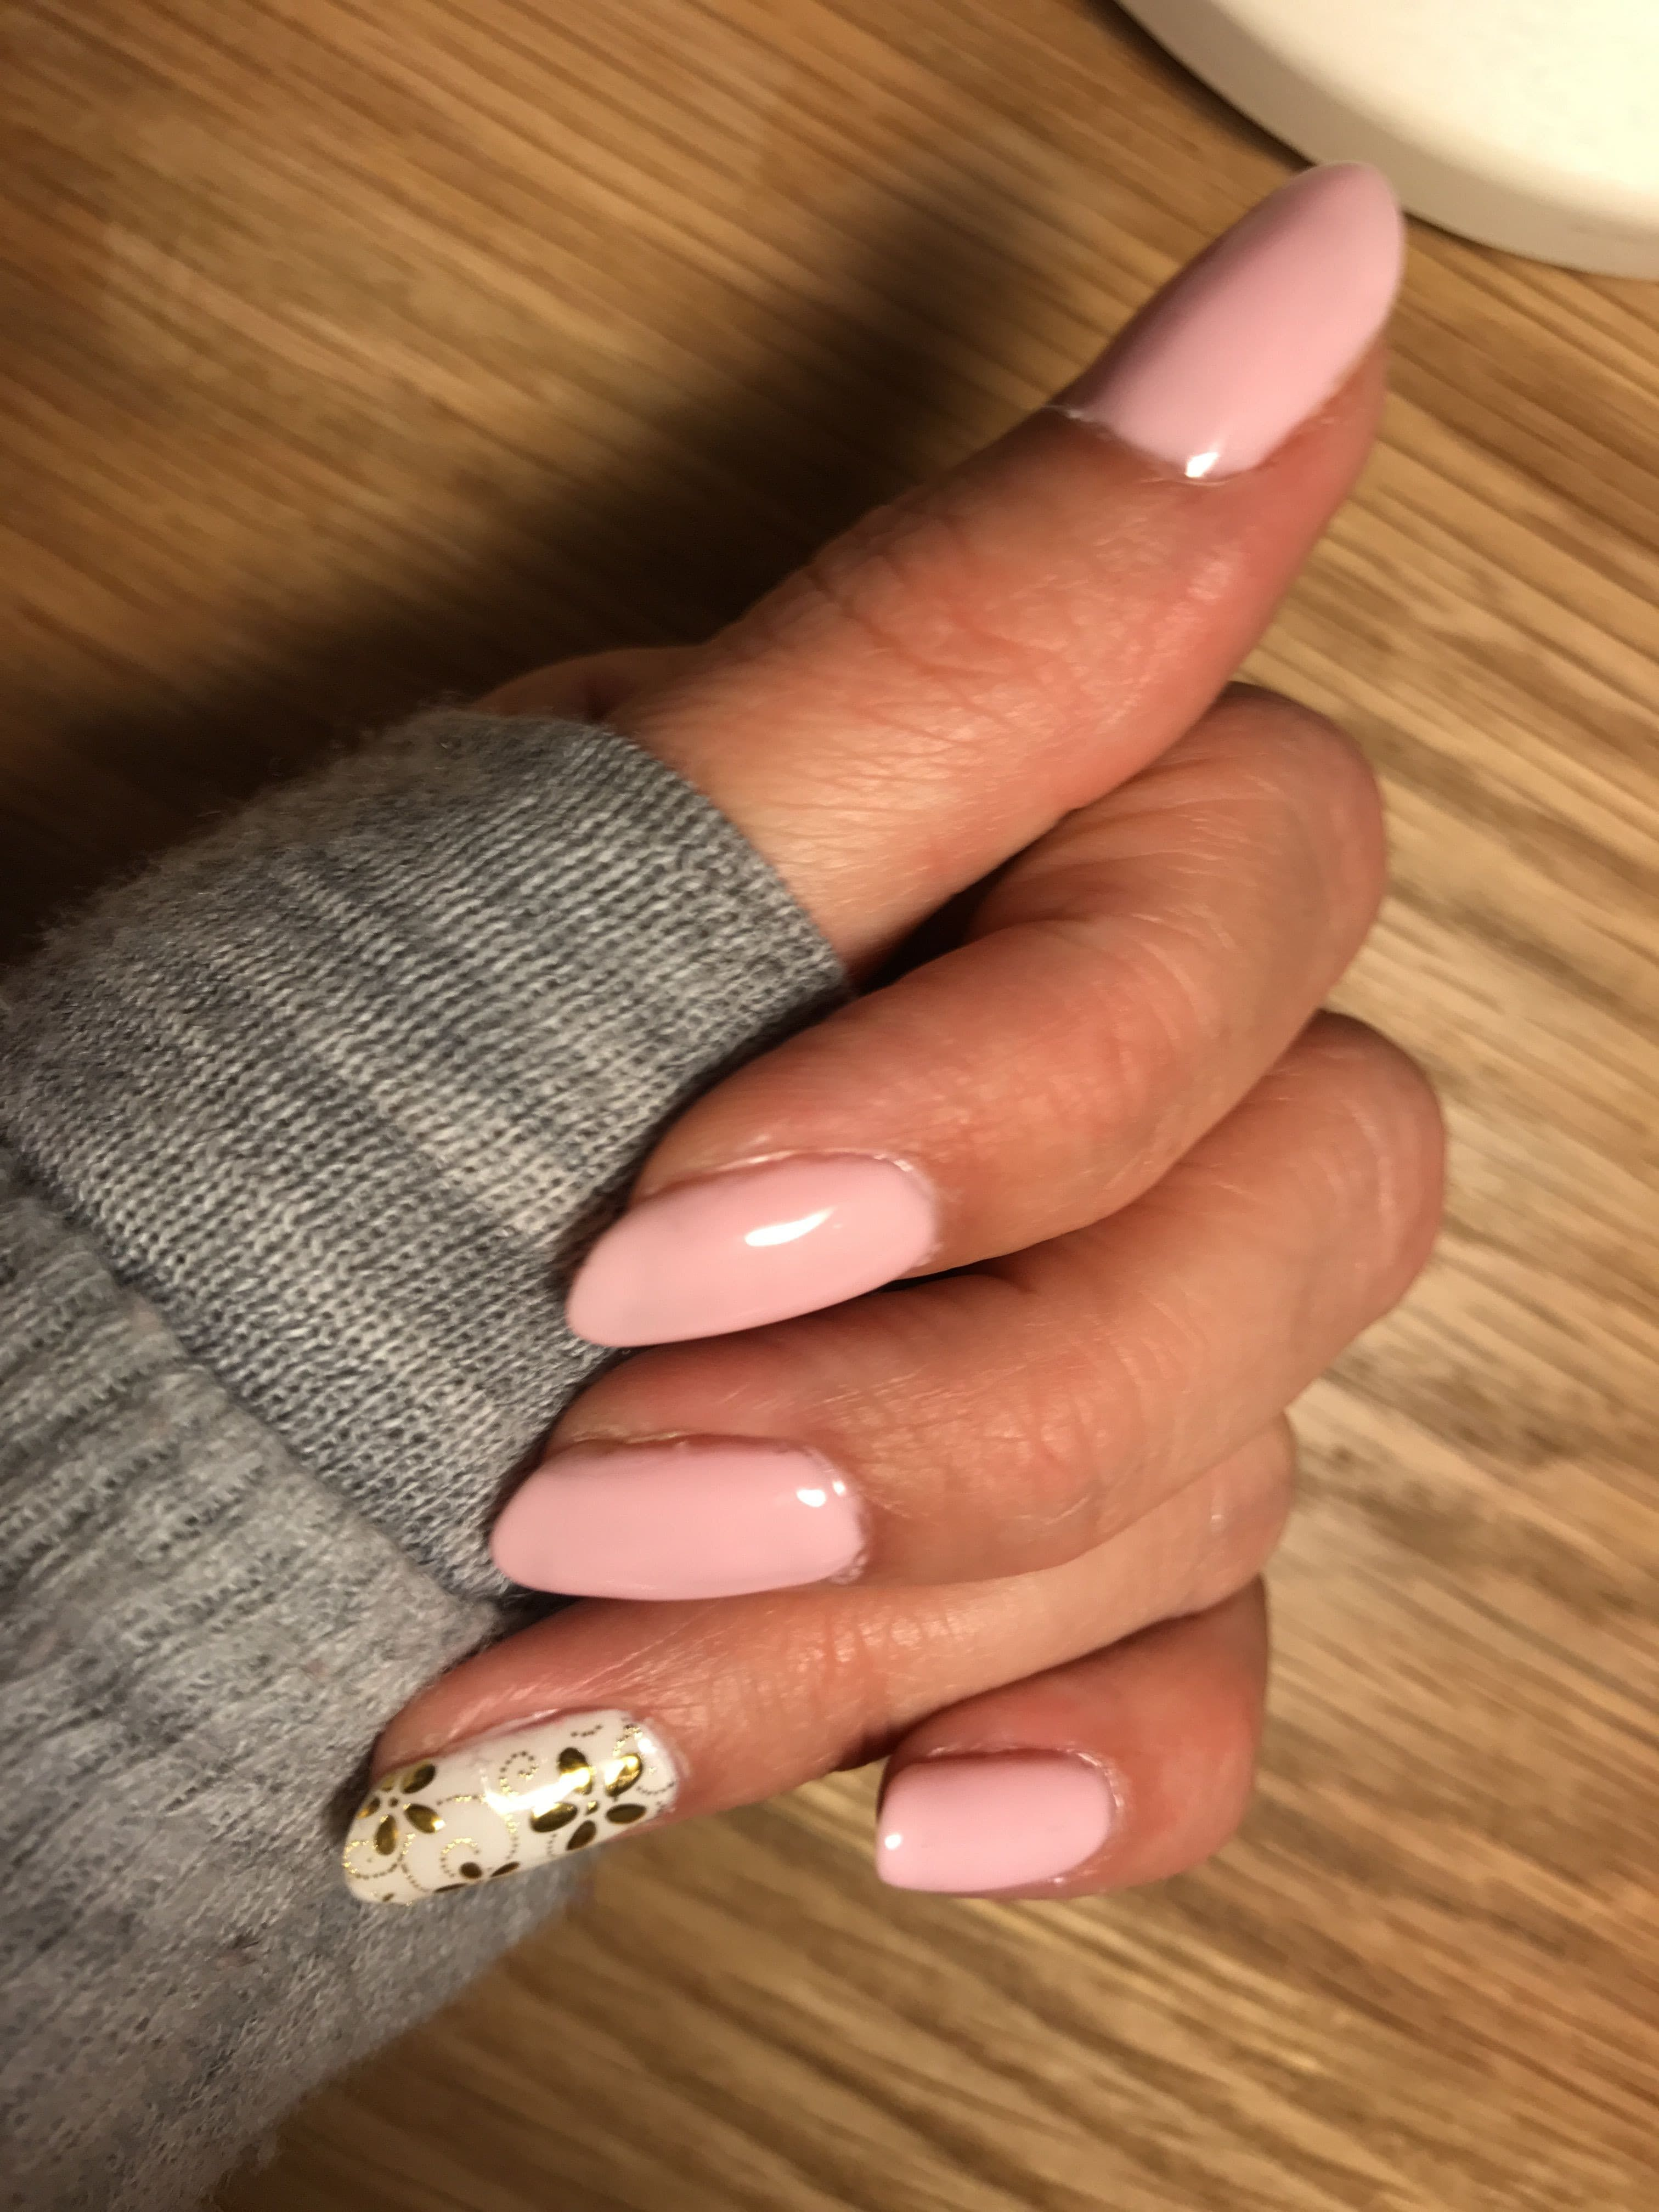 23 Best Of Acrylic Nails Course Neonail Manicure Hybrydowy First Love 23 Best Of Acrylic Nails Course Nai Acrylic Nail Courses Nails Mobile Nail Technician